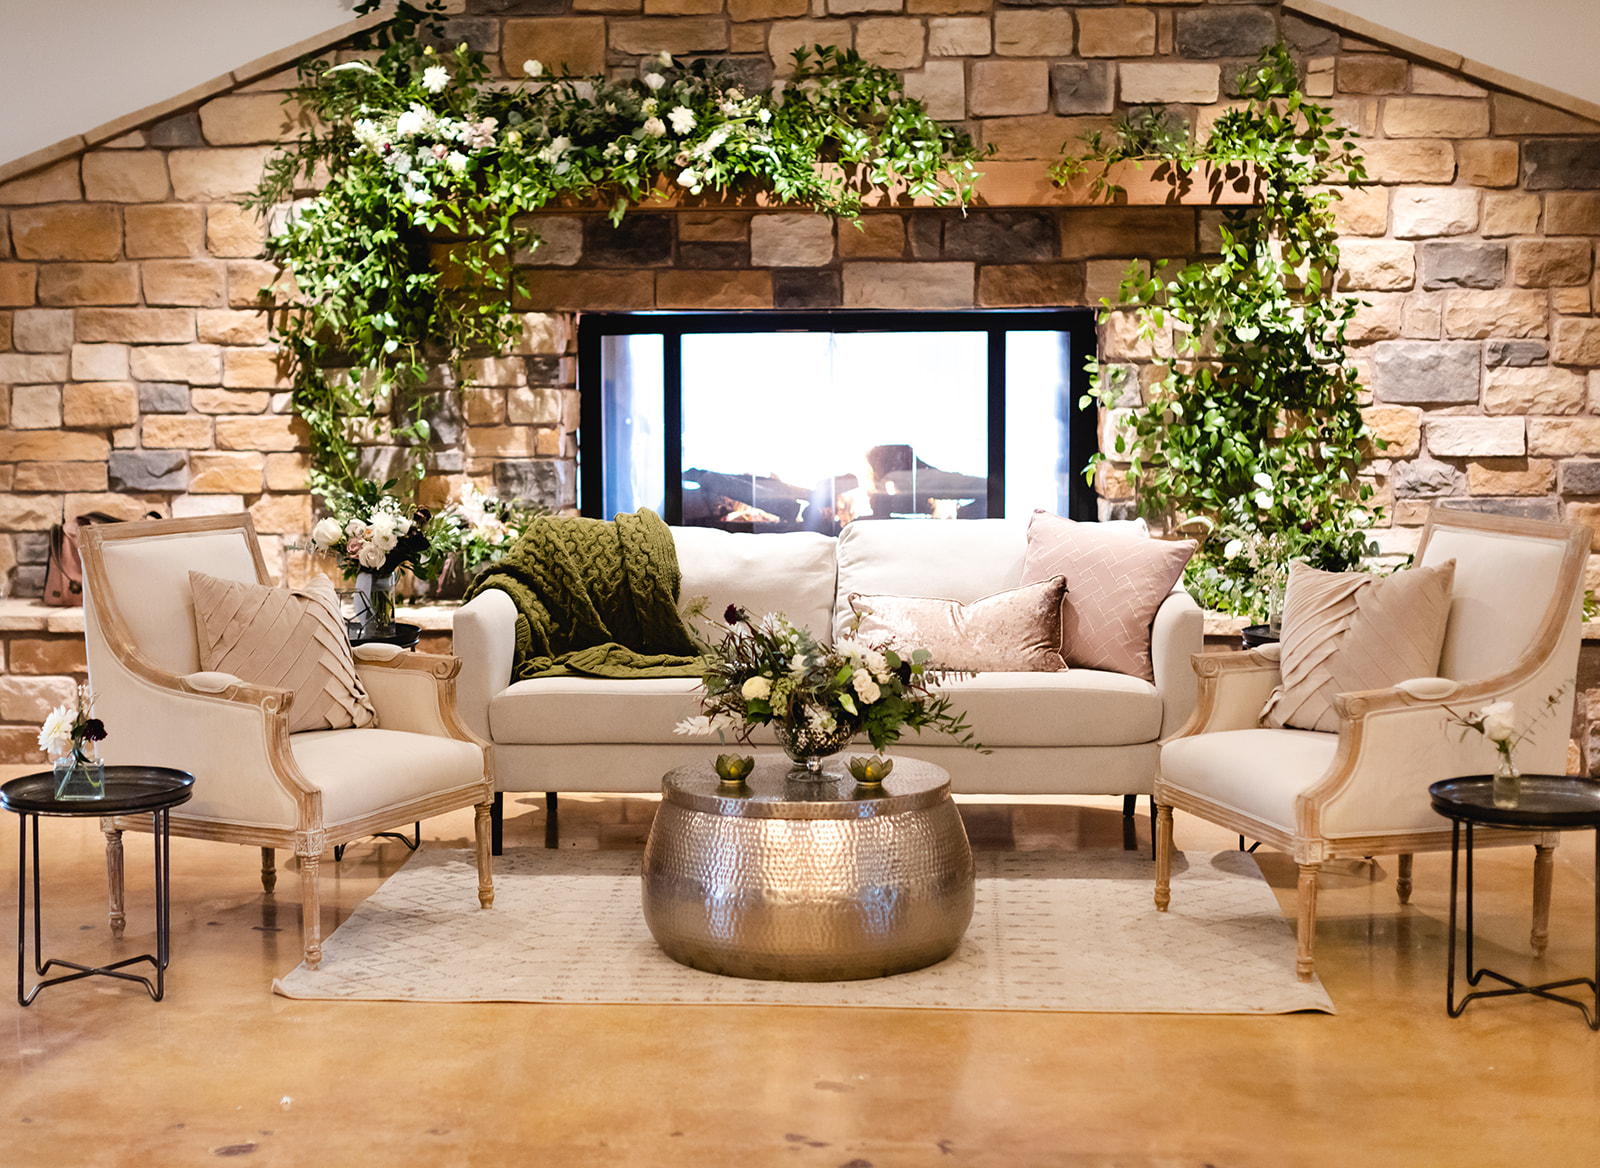 Mega Wedding Planner's Wedding Blog The Design: The Hearth House Venue Hearth House